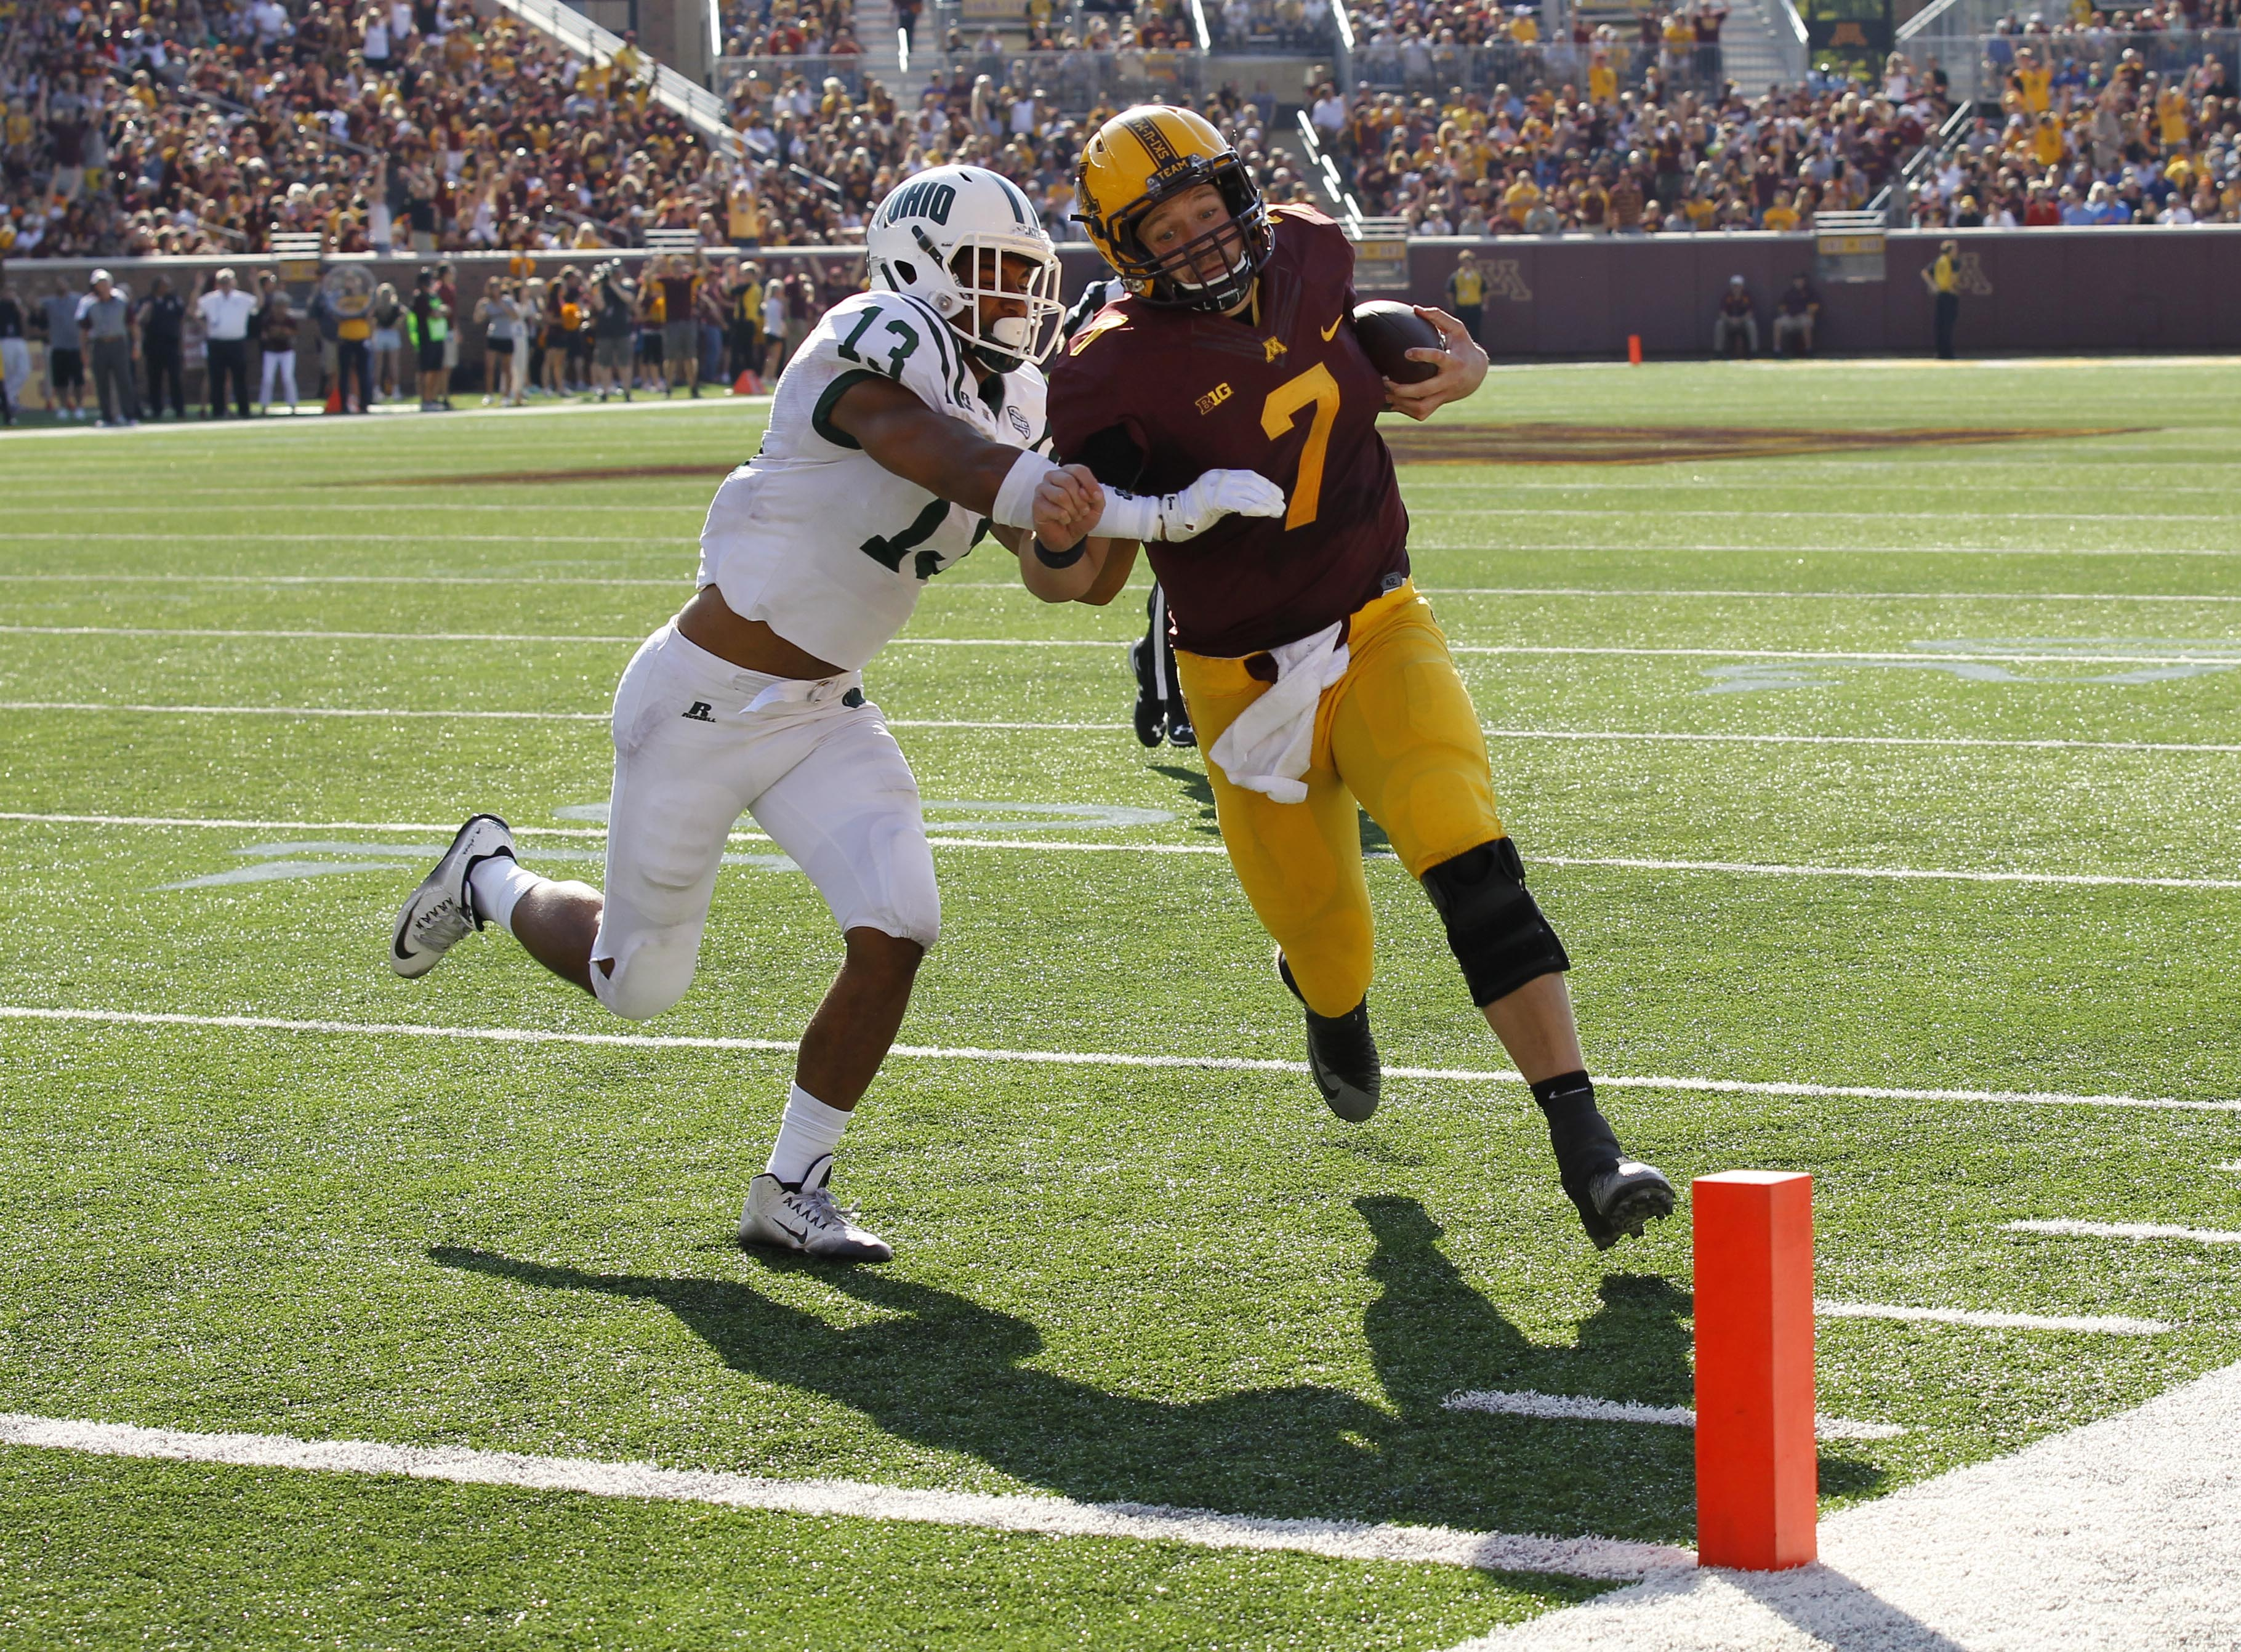 Ohio safety Devin Jones (13) tackles Minnesota quarterback Mitch Leidner (7) during the second quarter of an NCAA college football game in Minneapolis, Saturday, Sept. 26, 2015. (AP Photo/Ann Heisenfelt)